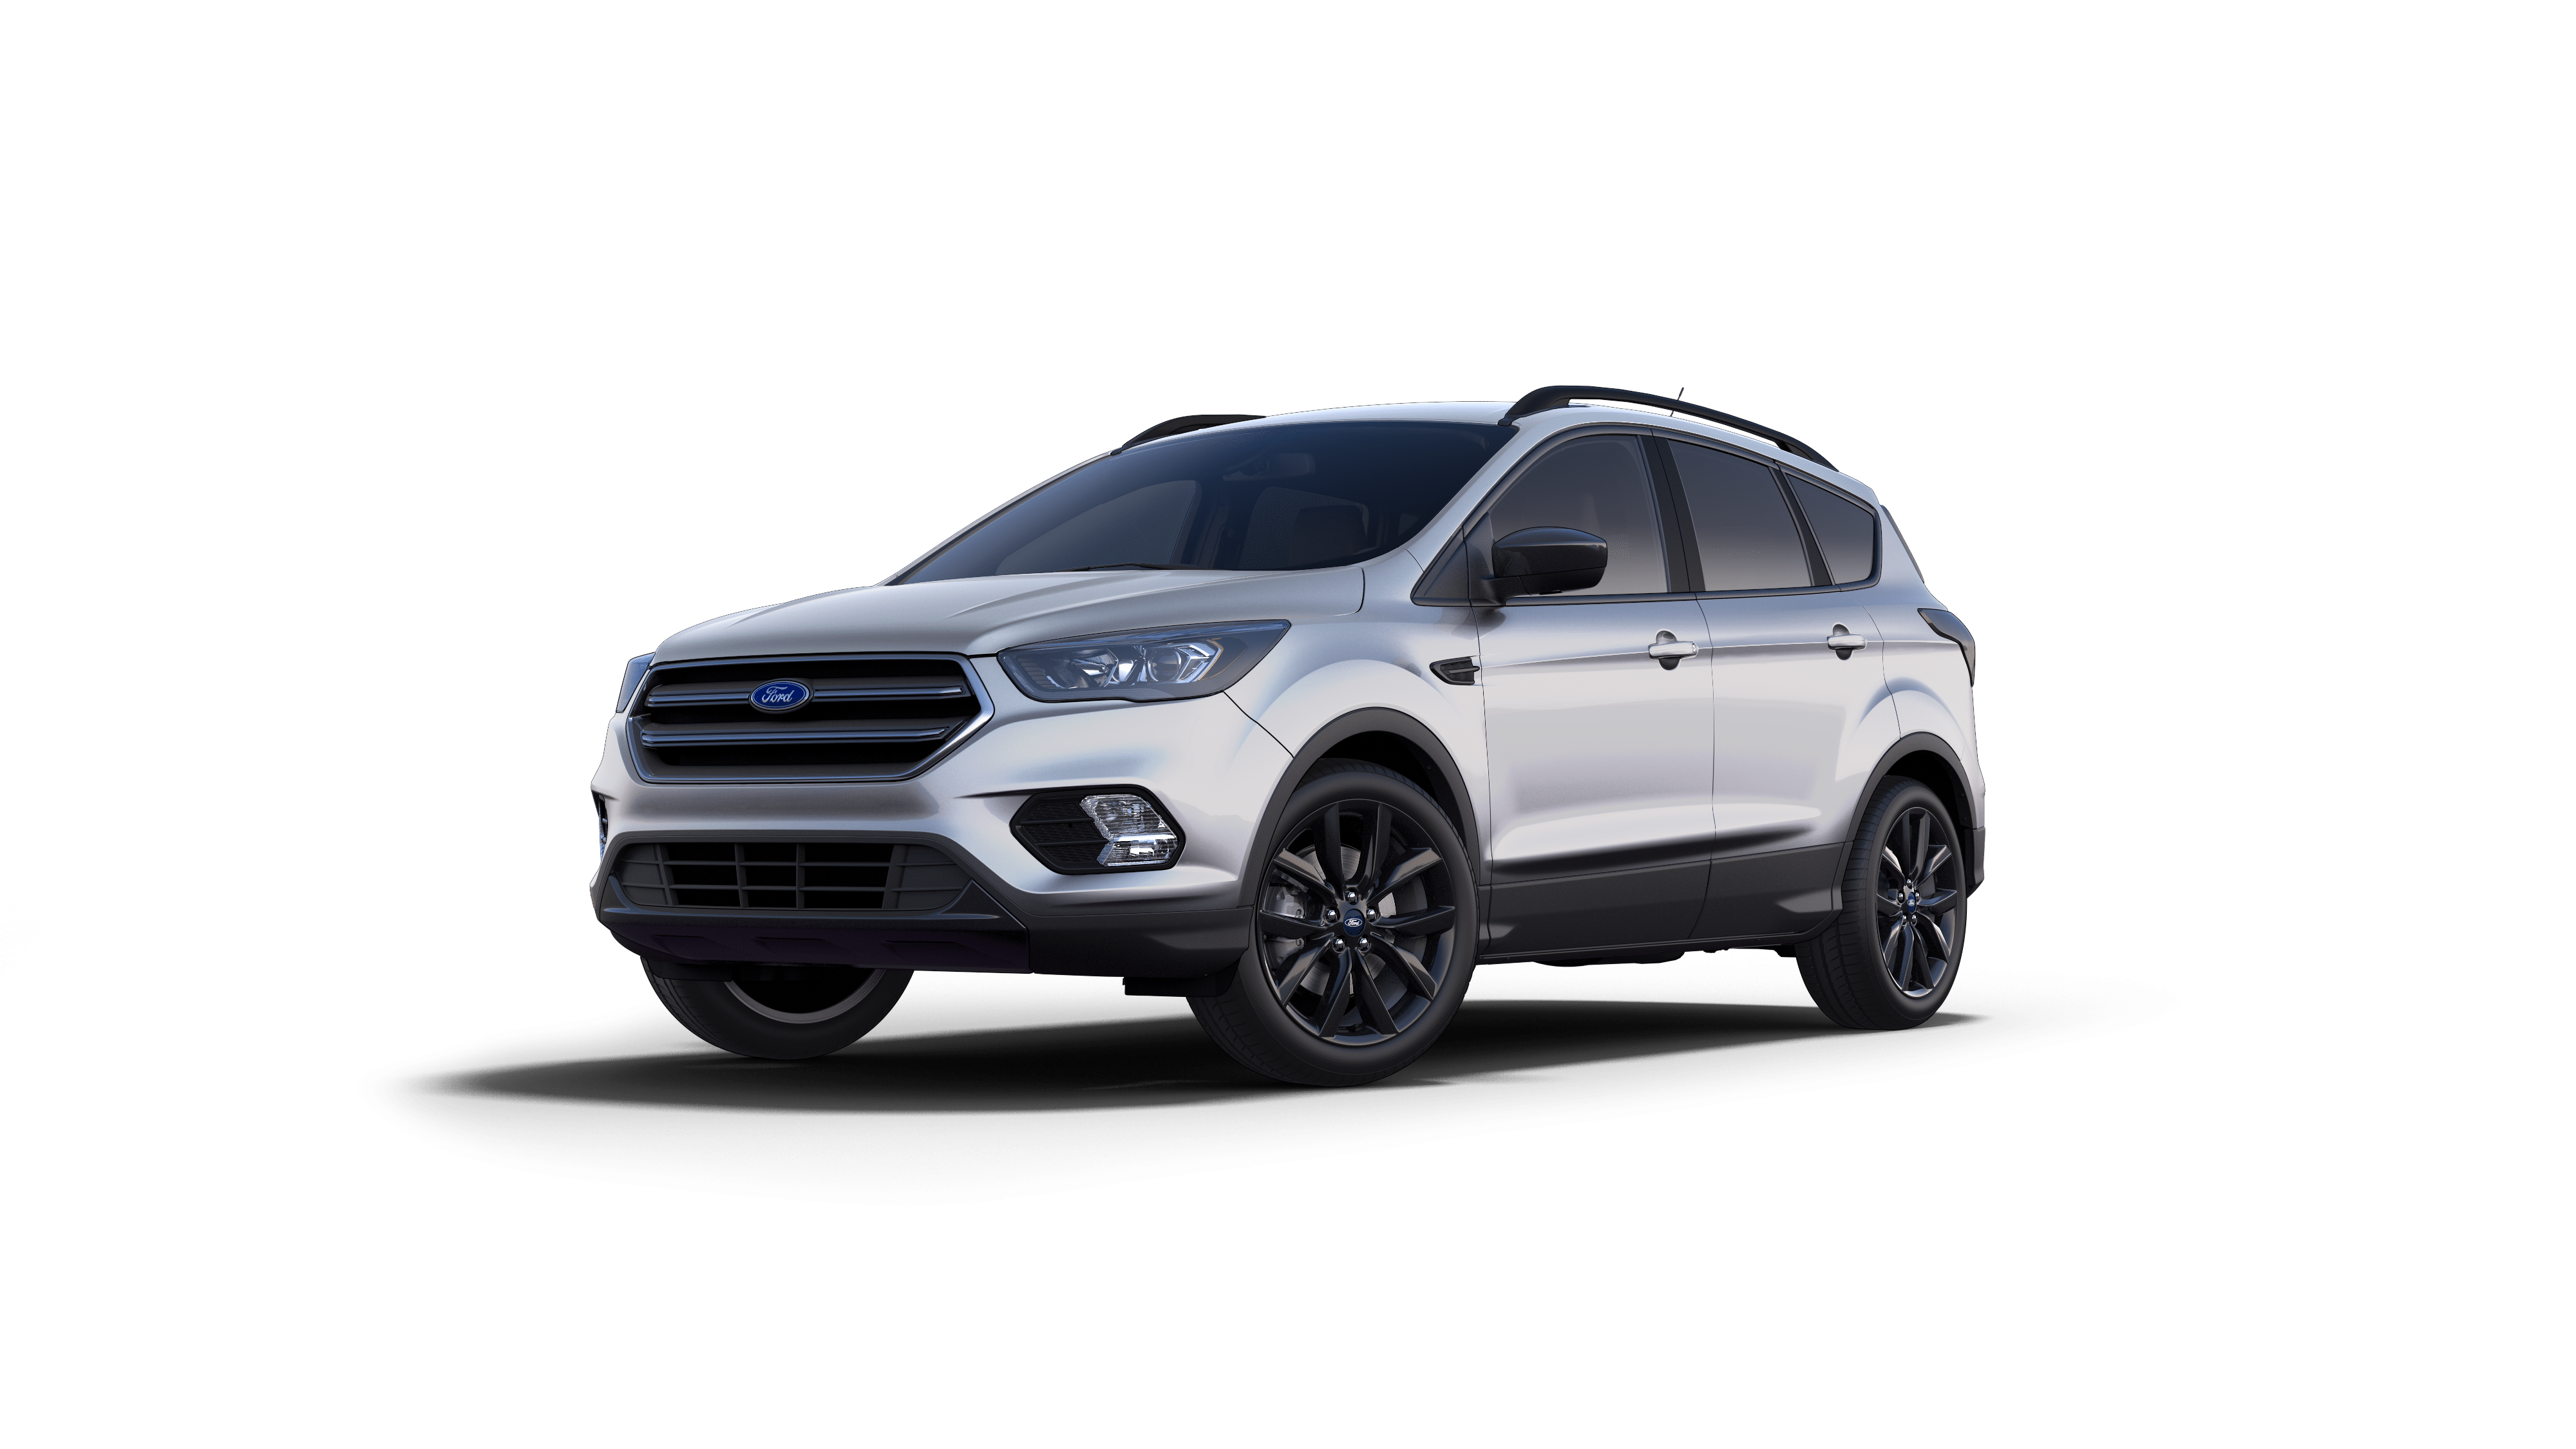 2019 ford escape for sale in natrona heights 1fmcu9gd5kua94852 cochran ford. Black Bedroom Furniture Sets. Home Design Ideas